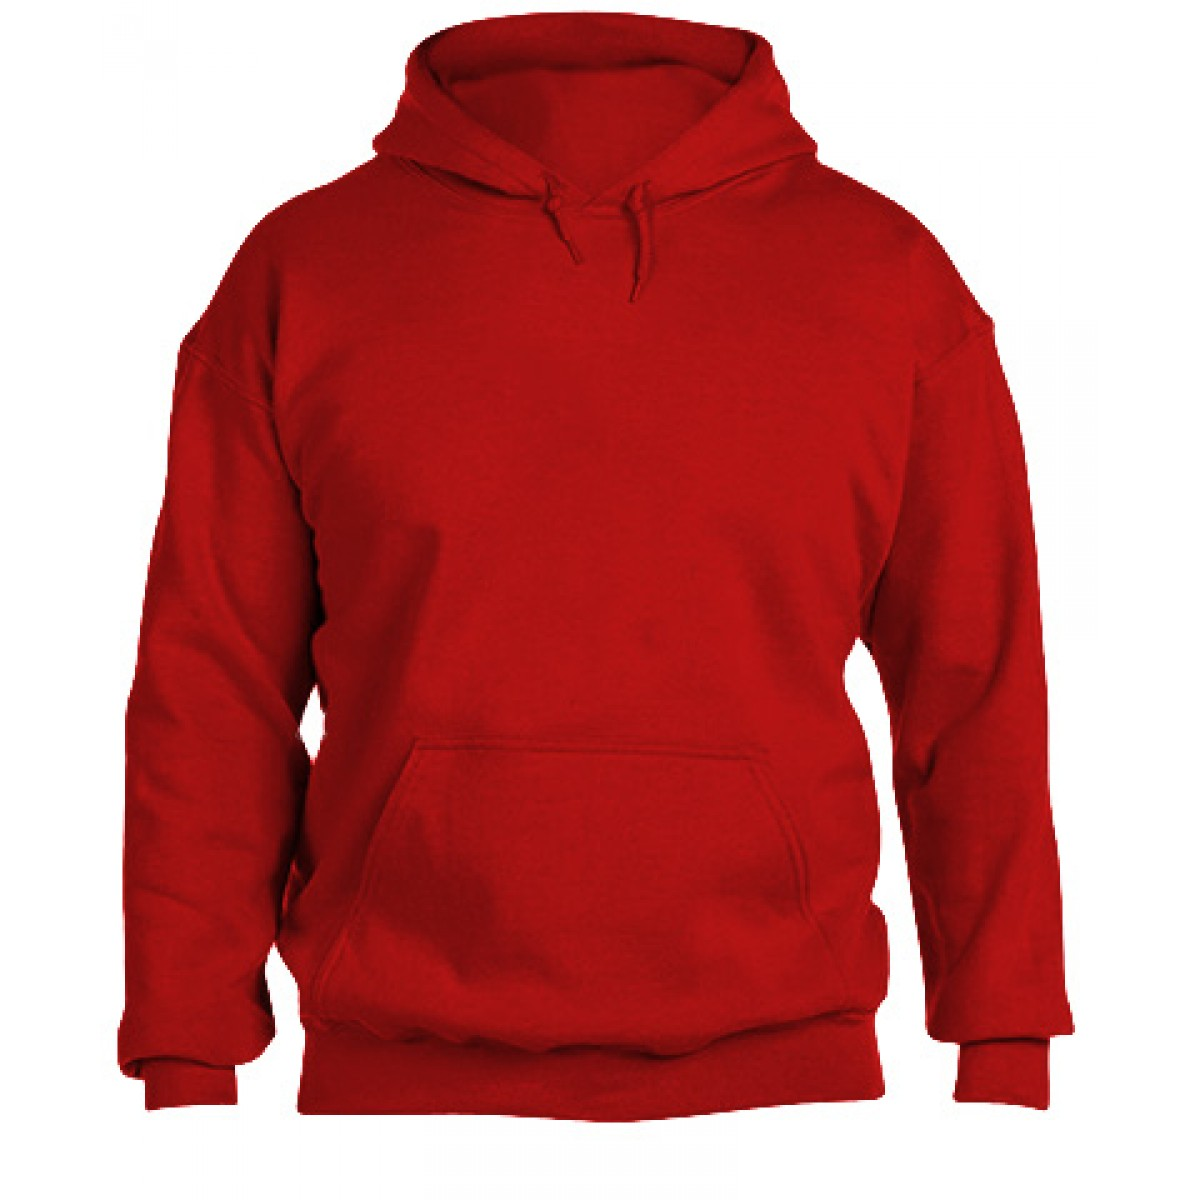 Hooded Sweatshirt 50/50 Heavy Blend -Red-3XL